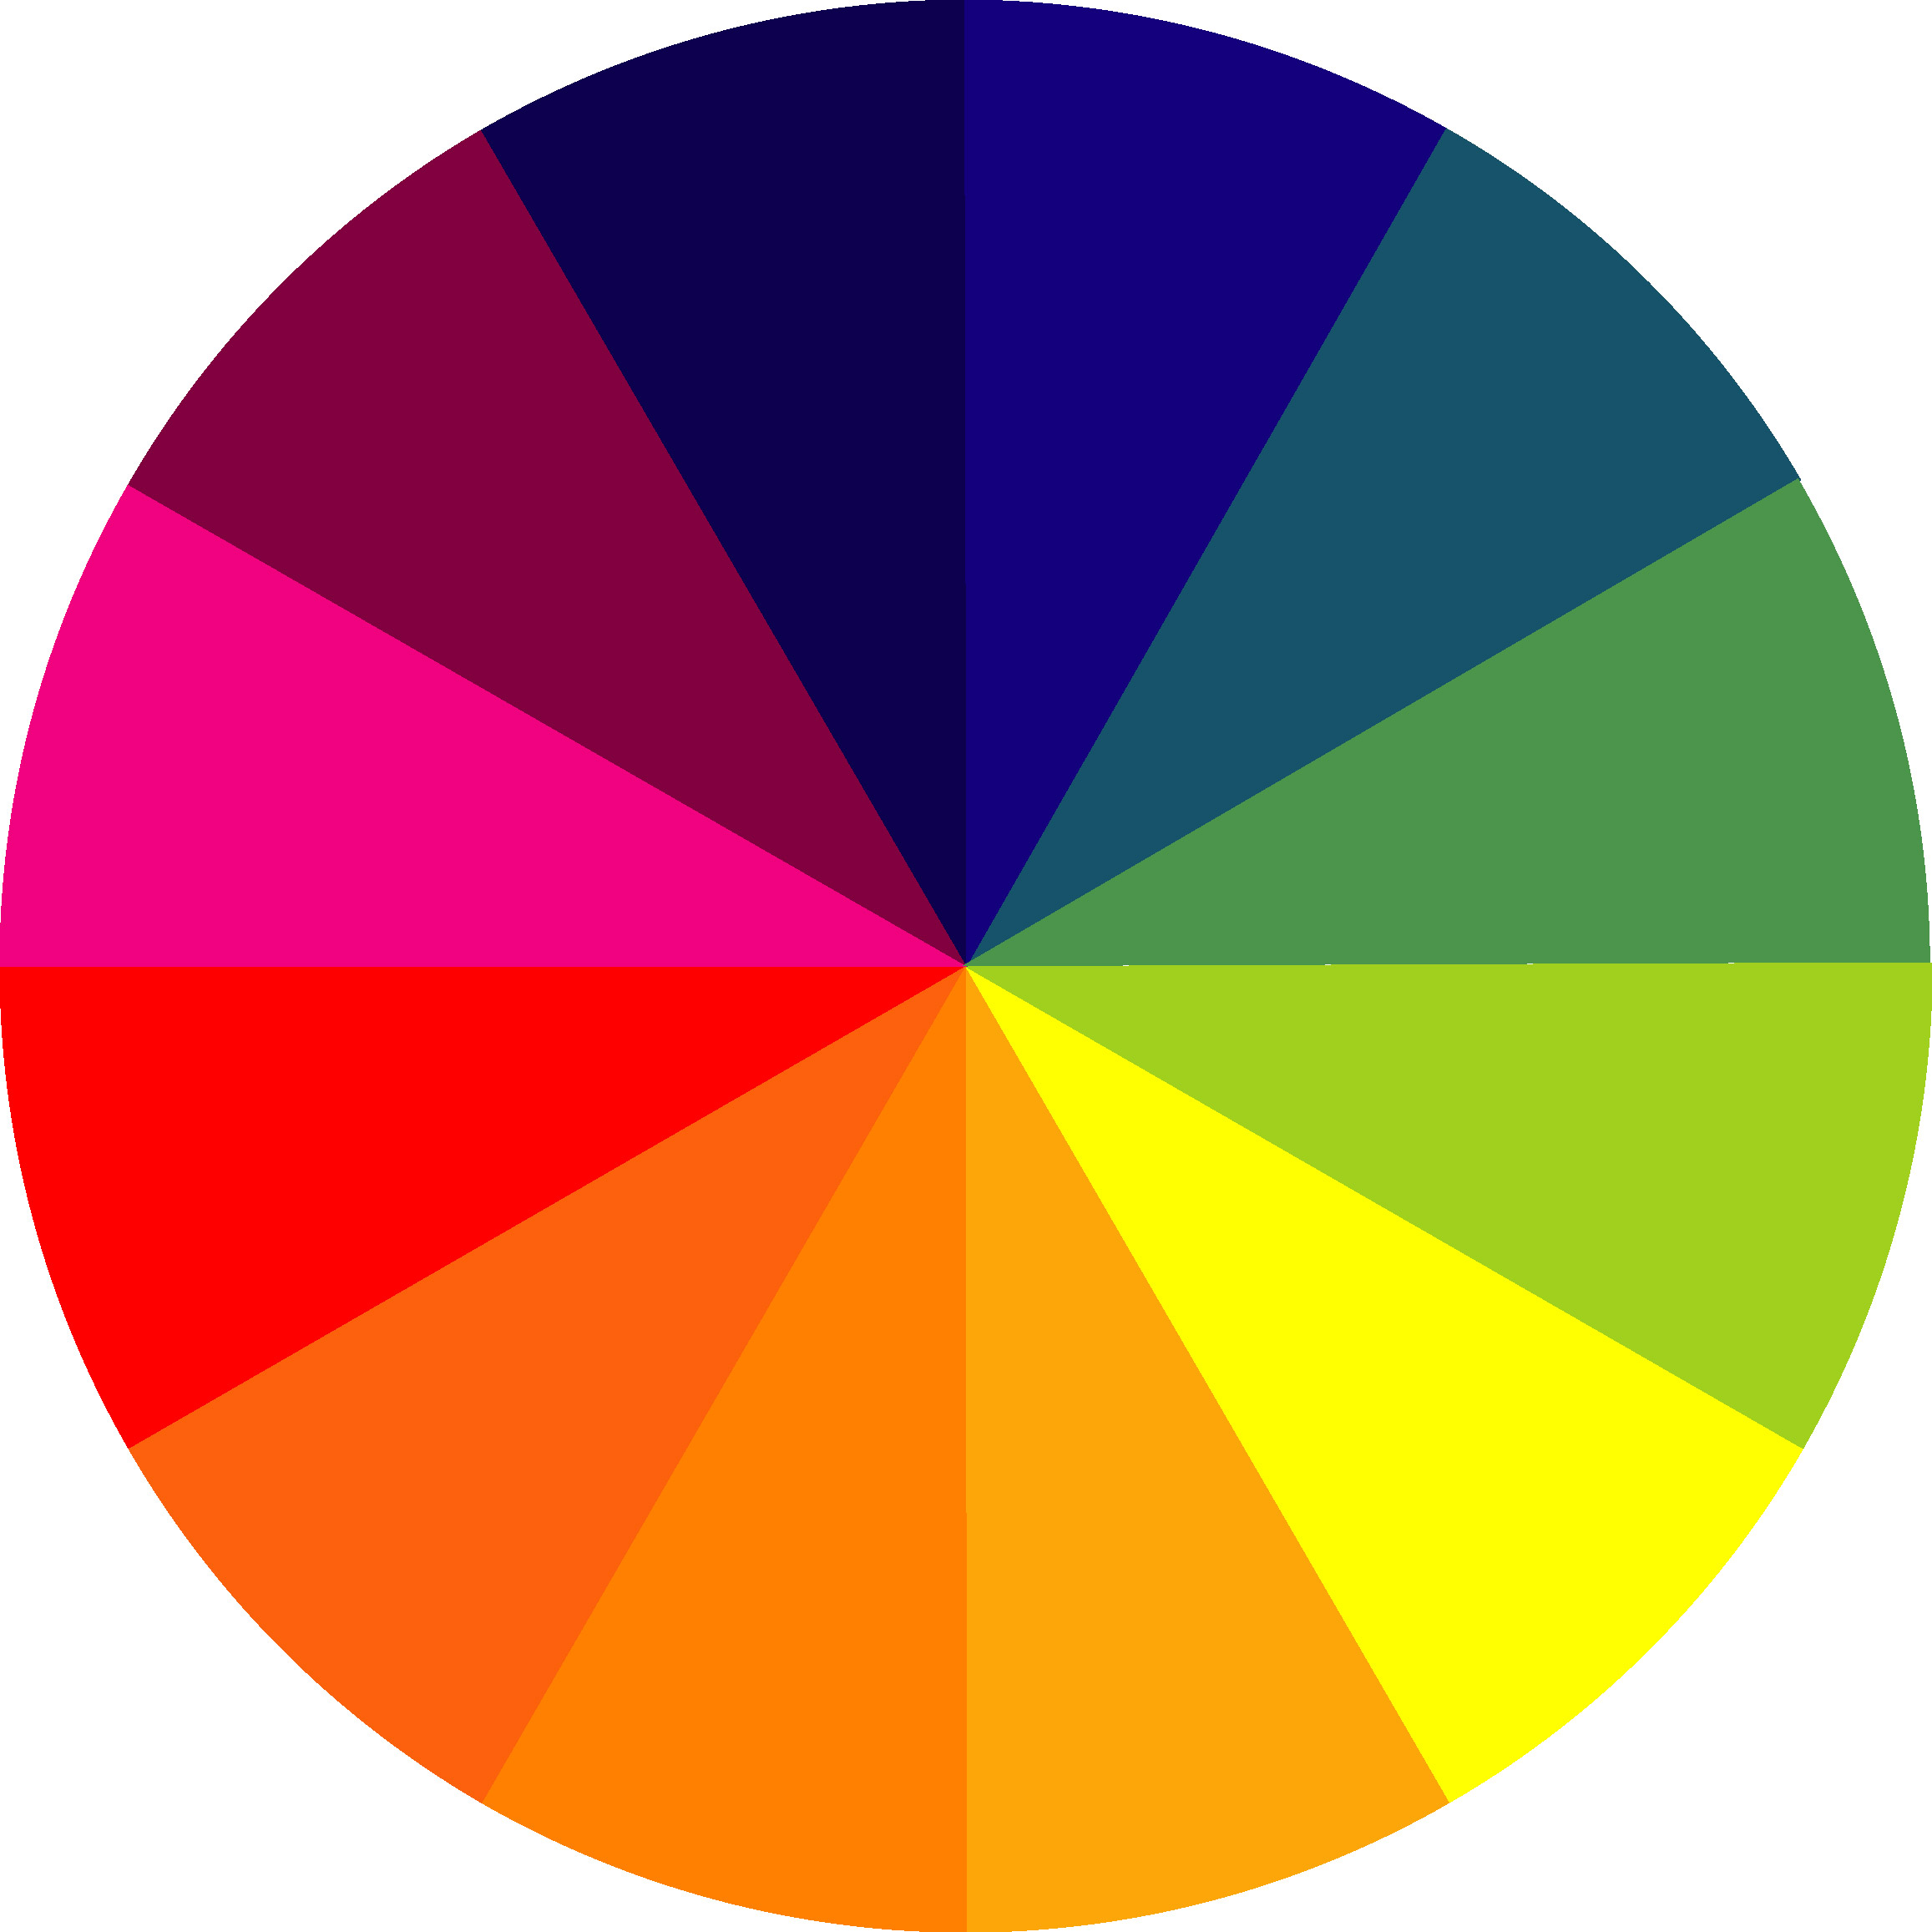 King Scale of Color.